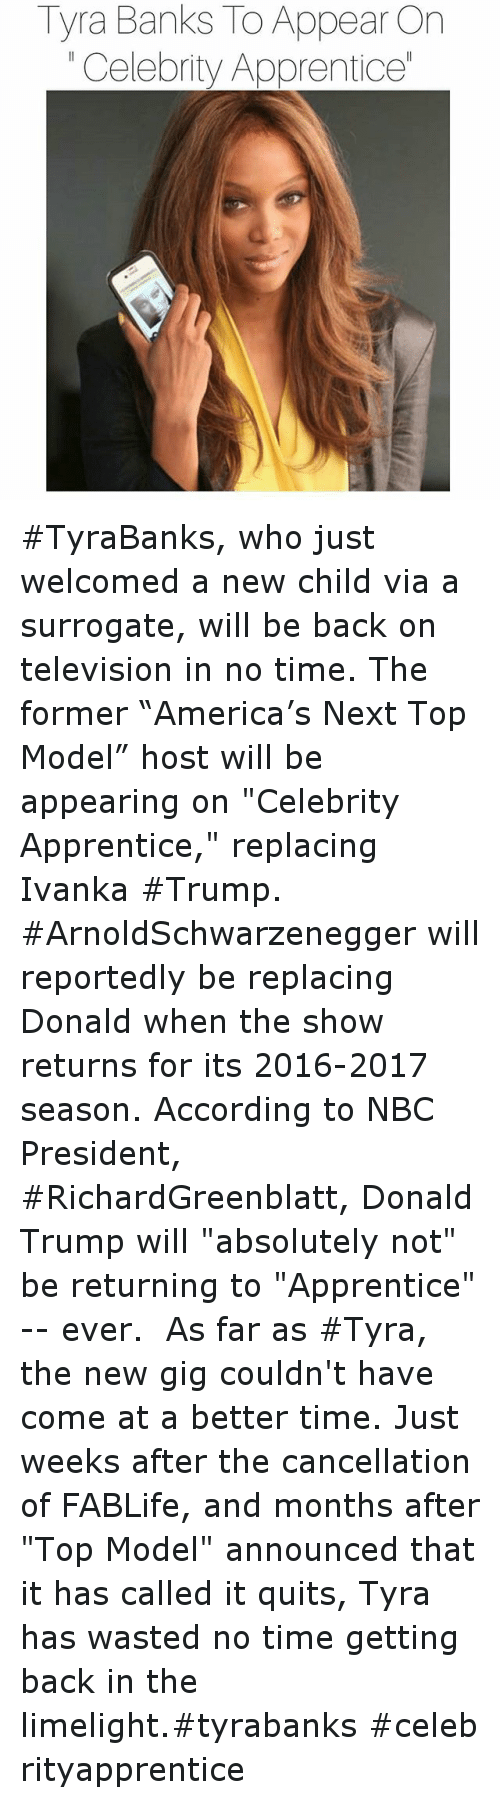 """top models: Tyra Banks ToAppear On  Celebrity Apprenticel TyraBanks, who just welcomed a new child via a surrogate, will be back on television in no time. The former """"America's Next Top Model"""" host will be appearing on """"Celebrity Apprentice,"""" replacing Ivanka Trump. ArnoldSchwarzenegger will reportedly be replacing Donald when the show returns for its 2016-2017 season. According to NBC President, RichardGreenblatt, Donald Trump will """"absolutely not"""" be returning to """"Apprentice"""" - ever.-As far as Tyra, the new gig couldn't have come at a better time. Just weeks after the cancellation of FABLife, and months after """"Top Model"""" announced that it has called it quits, Tyra has wasted no time getting back in the limelight.tyrabankscelebrityapprentice"""